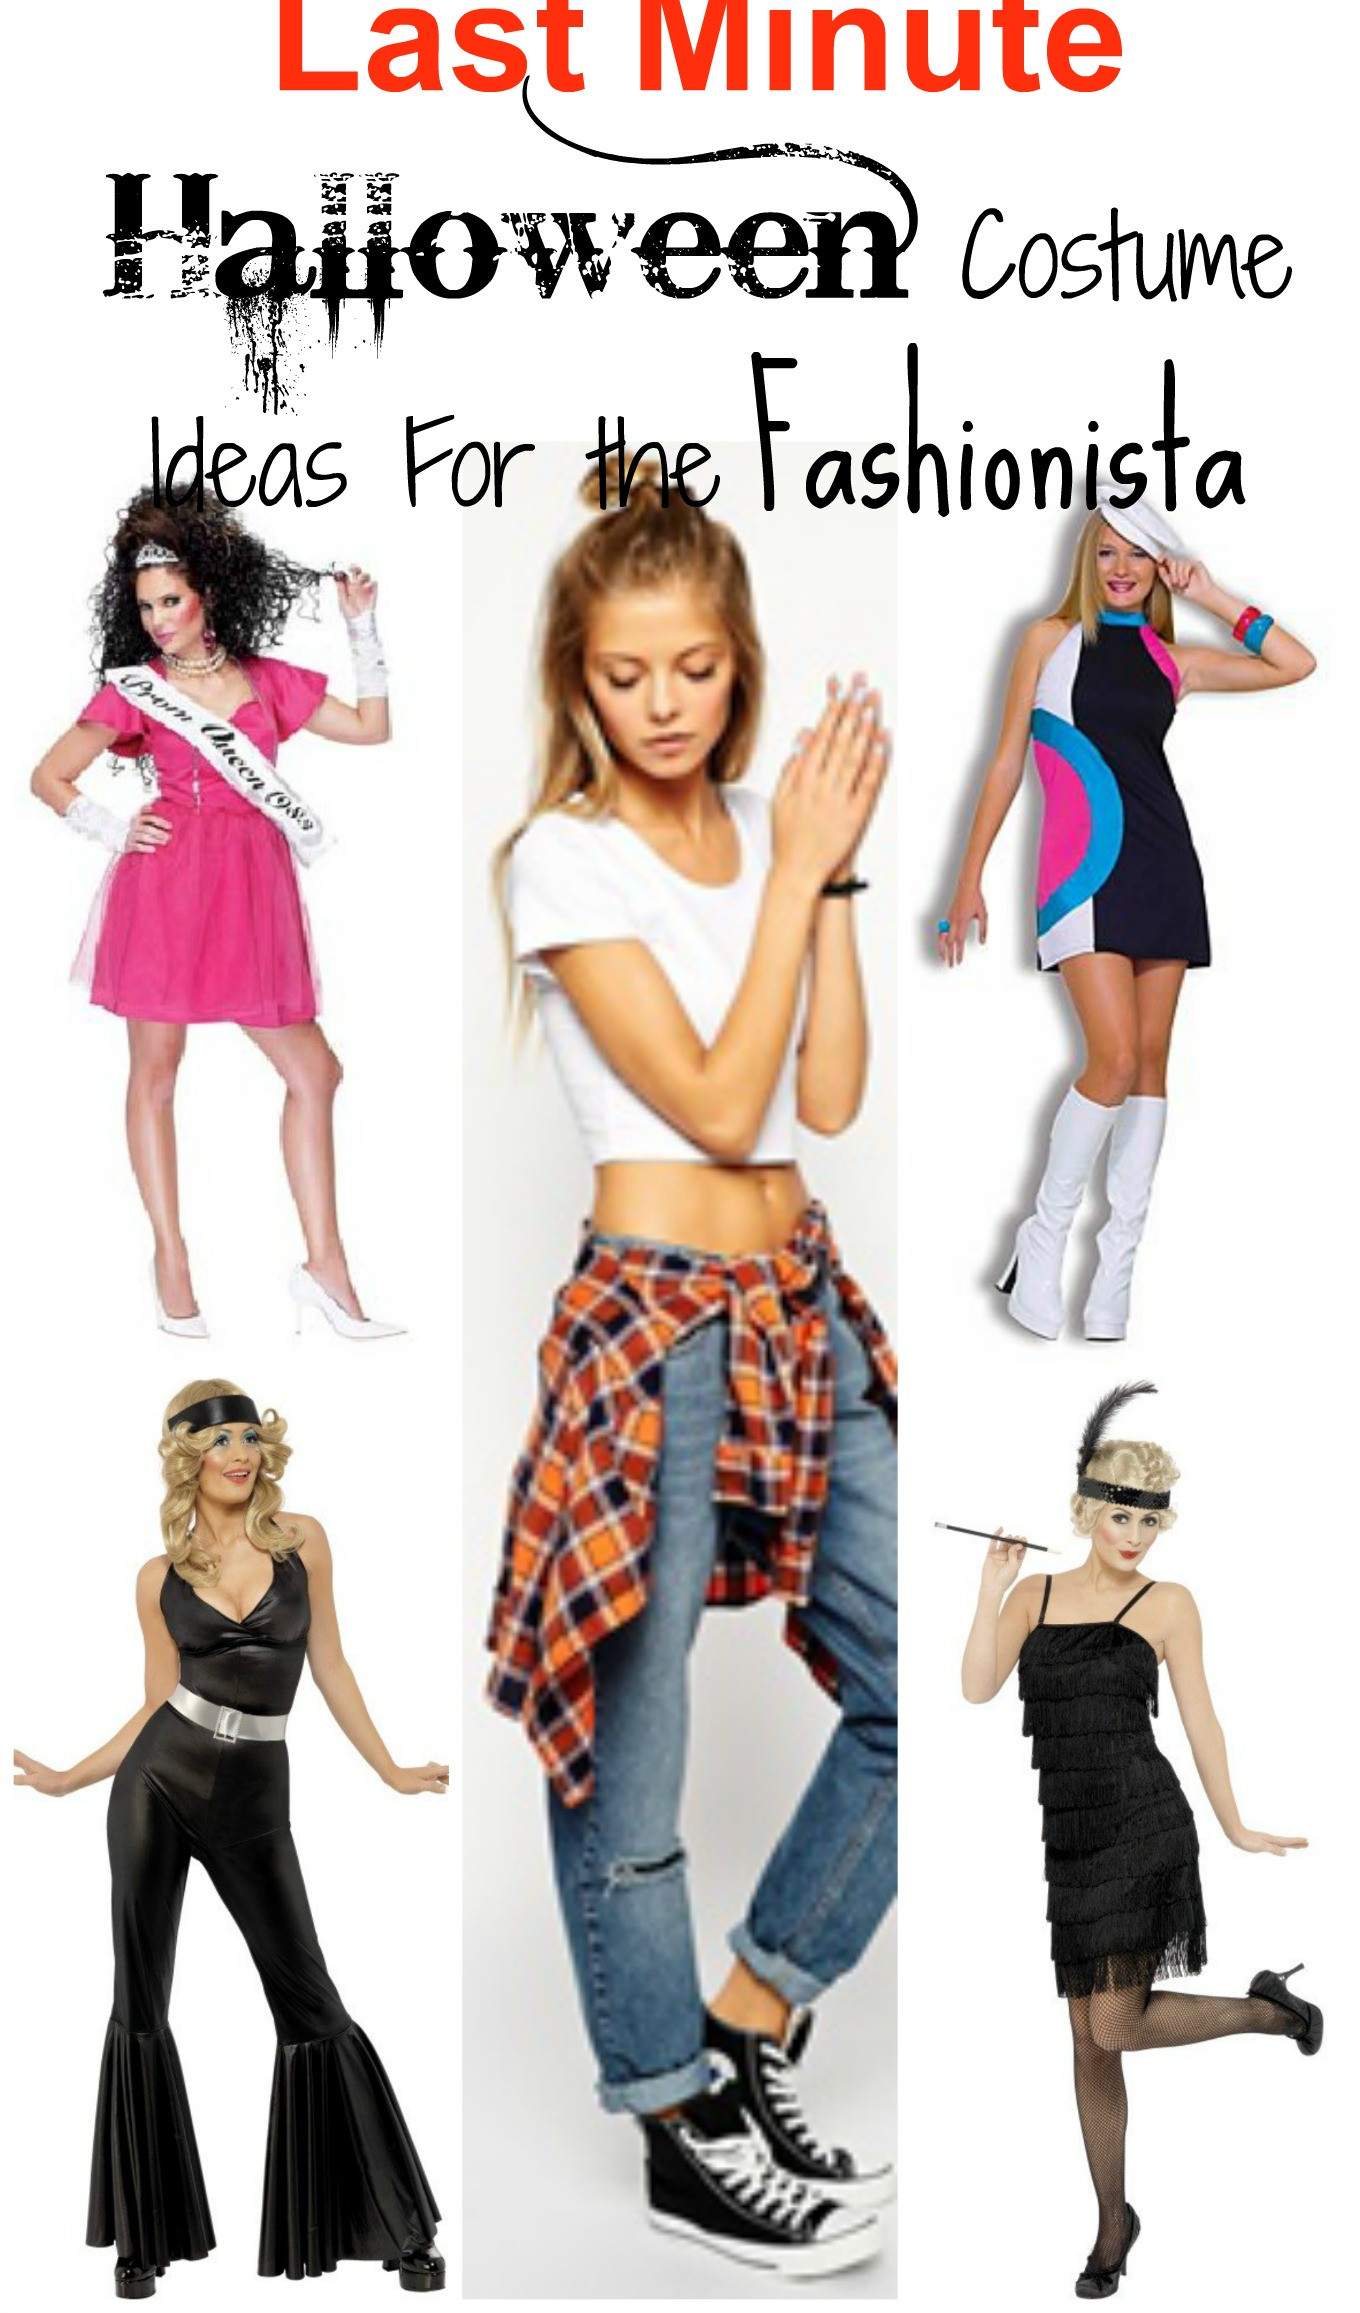 Last Minute DIY Halloween Costumes For Adults  5 Last Minute Halloween Costume Ideas For The Fashionista